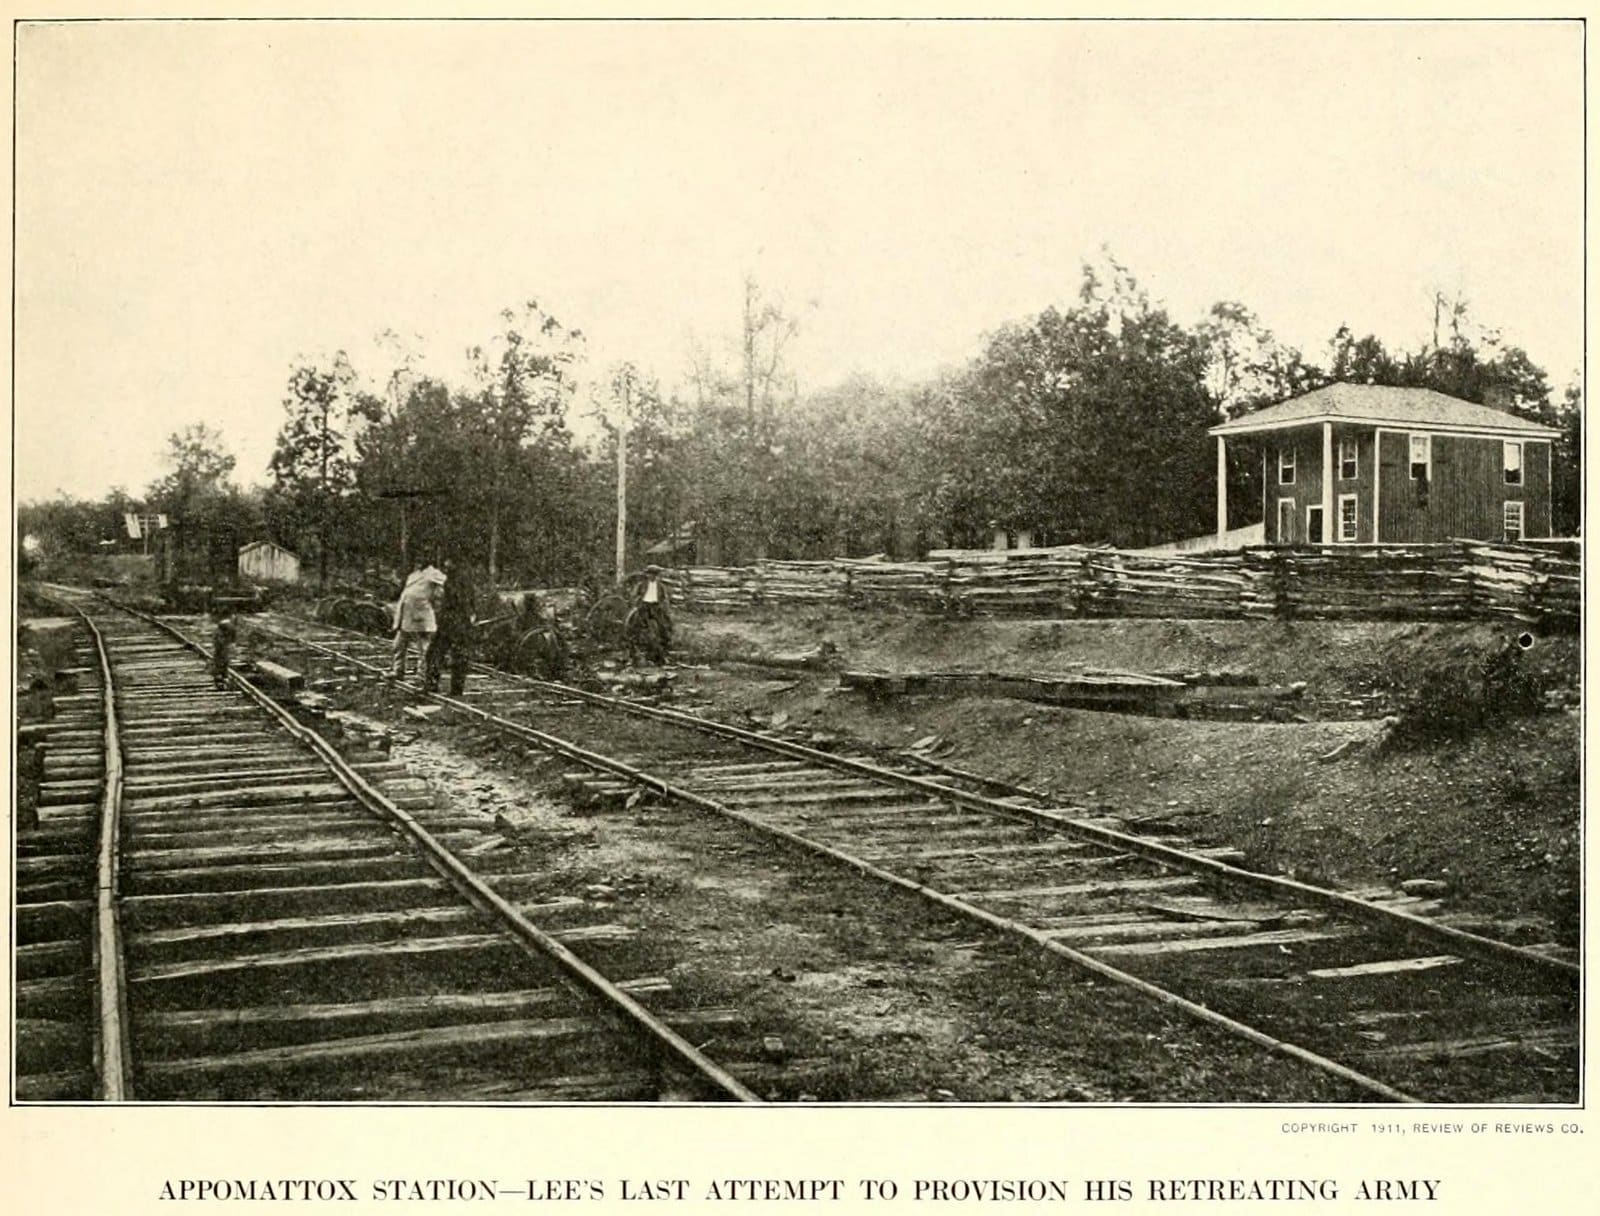 Civil War - Appomattox Station - Lee's last attempt to provision his retreating army